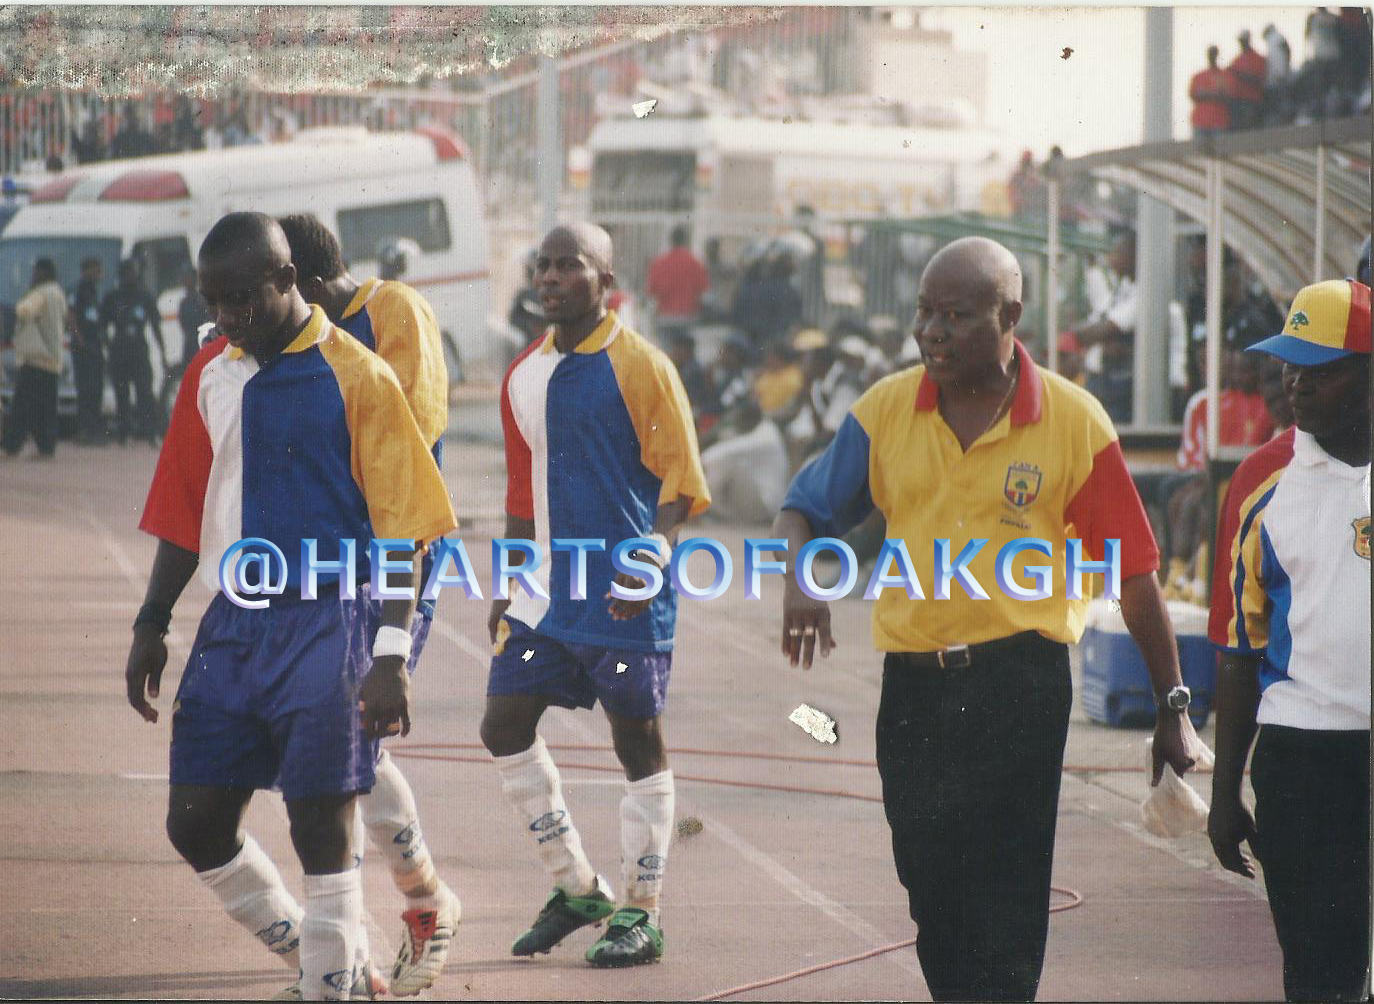 CAF CONFEDERATION CUP VICTORY OVER KOTOKO VOTED HEARTS' GREATEST GAME